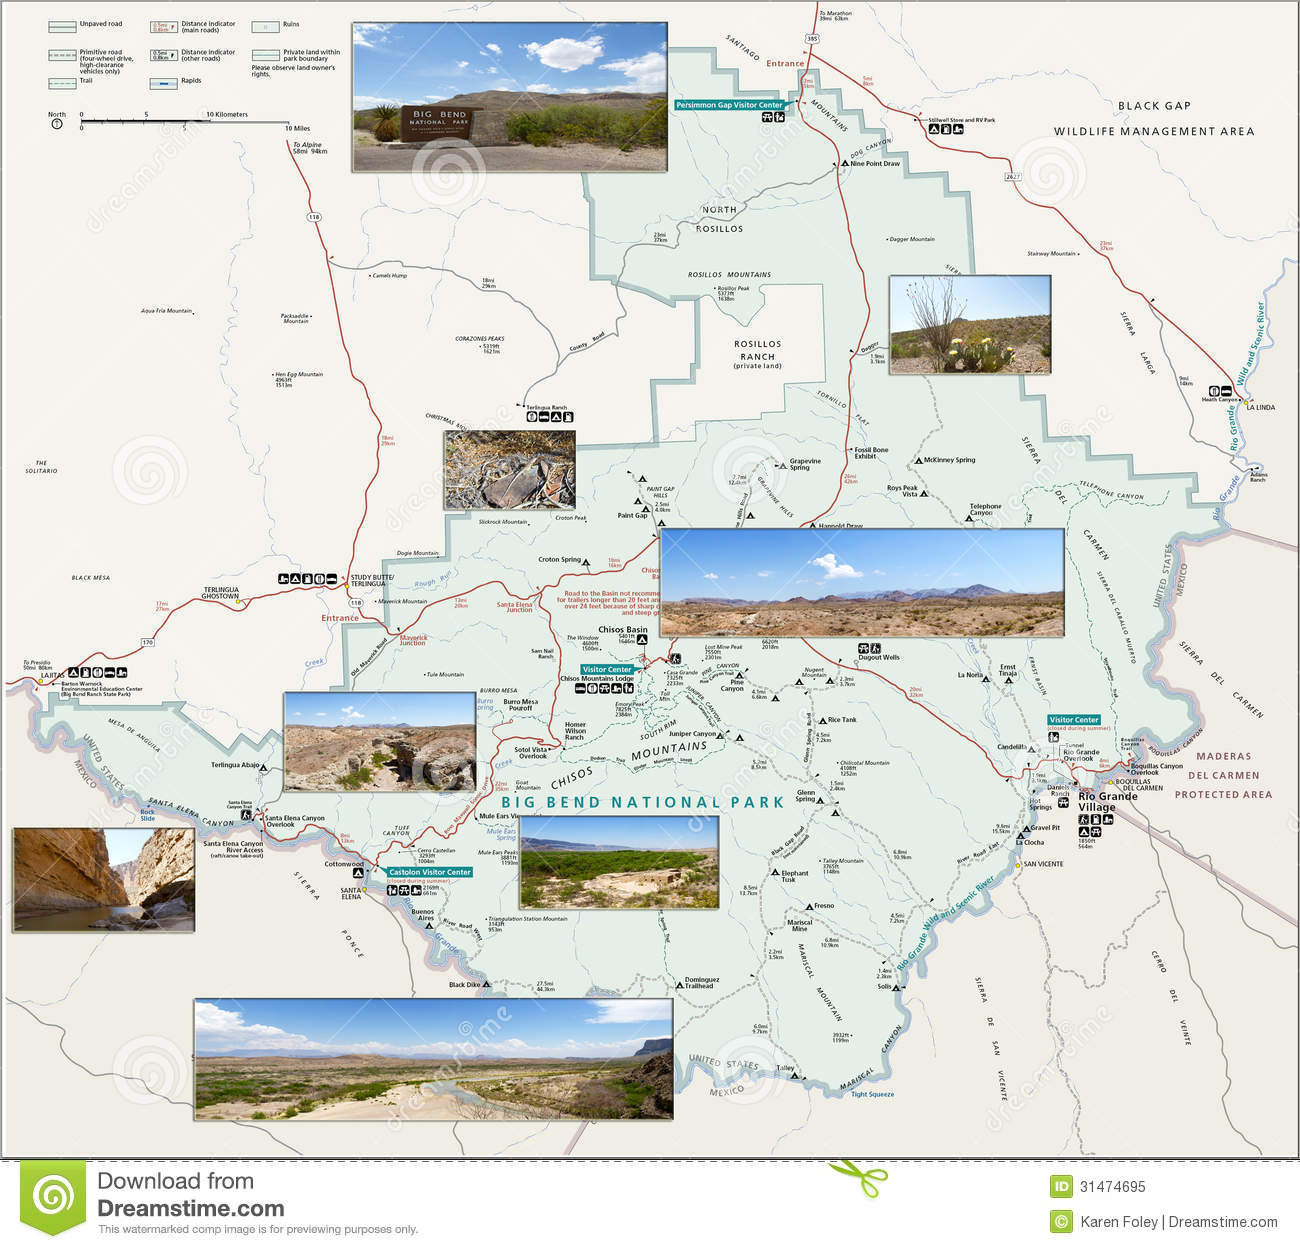 Map Of Big Bend National Park Stock Image - Image of mexican ... Map Big Bend National Park on texas map, redwood national park on a map, brazos bend state park trail map, amistad national recreation area map, balmorhea tx map, sequoia national park map, big bend outer mountain loop map, big bend ranch state park map, acadia national park on a map, gila cliff dwellings national monument map, yellowstone map, capulin volcano national monument map, palo duro canyon bike trail map, redwood national and state parks map, enchanted rock state natural area map, alibates flint quarries national monument map, elephant butte lake state park map, big bend trail map, city of rocks national reserve map, denali national park and preserve map,